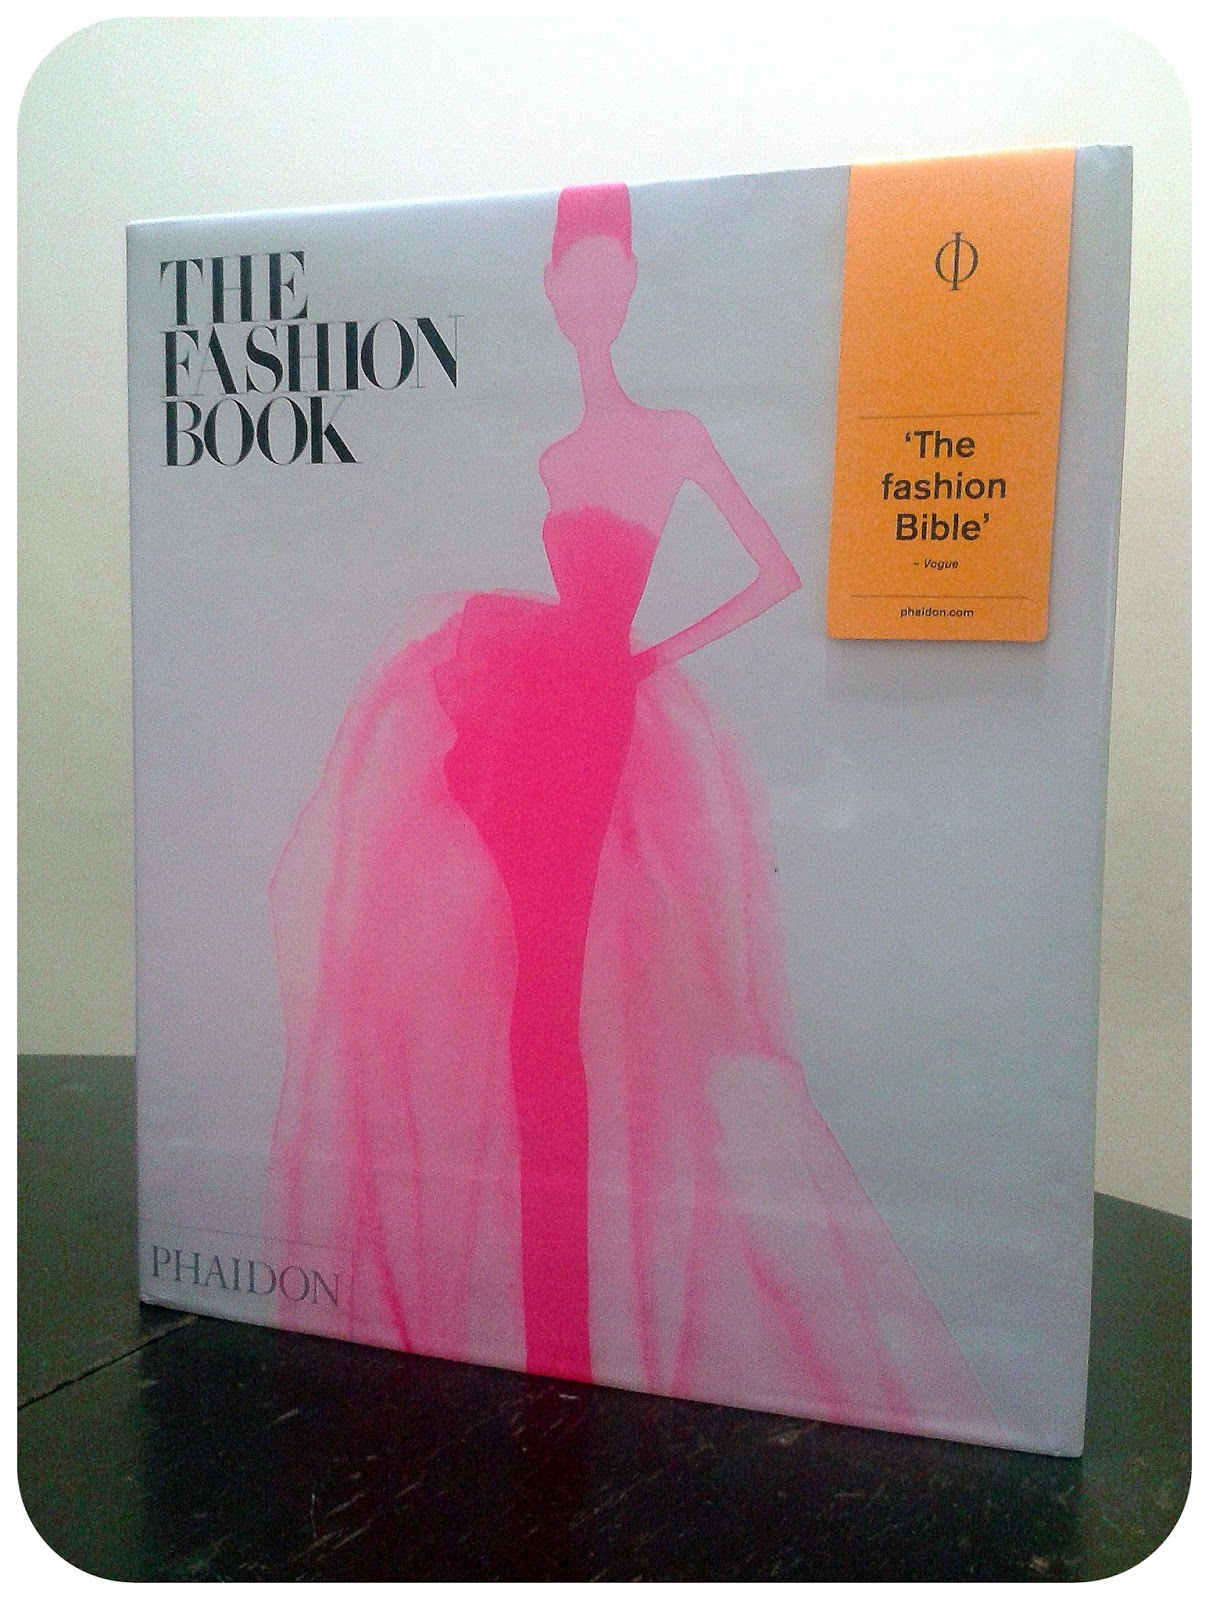 The Fashion Book Phaidon Review